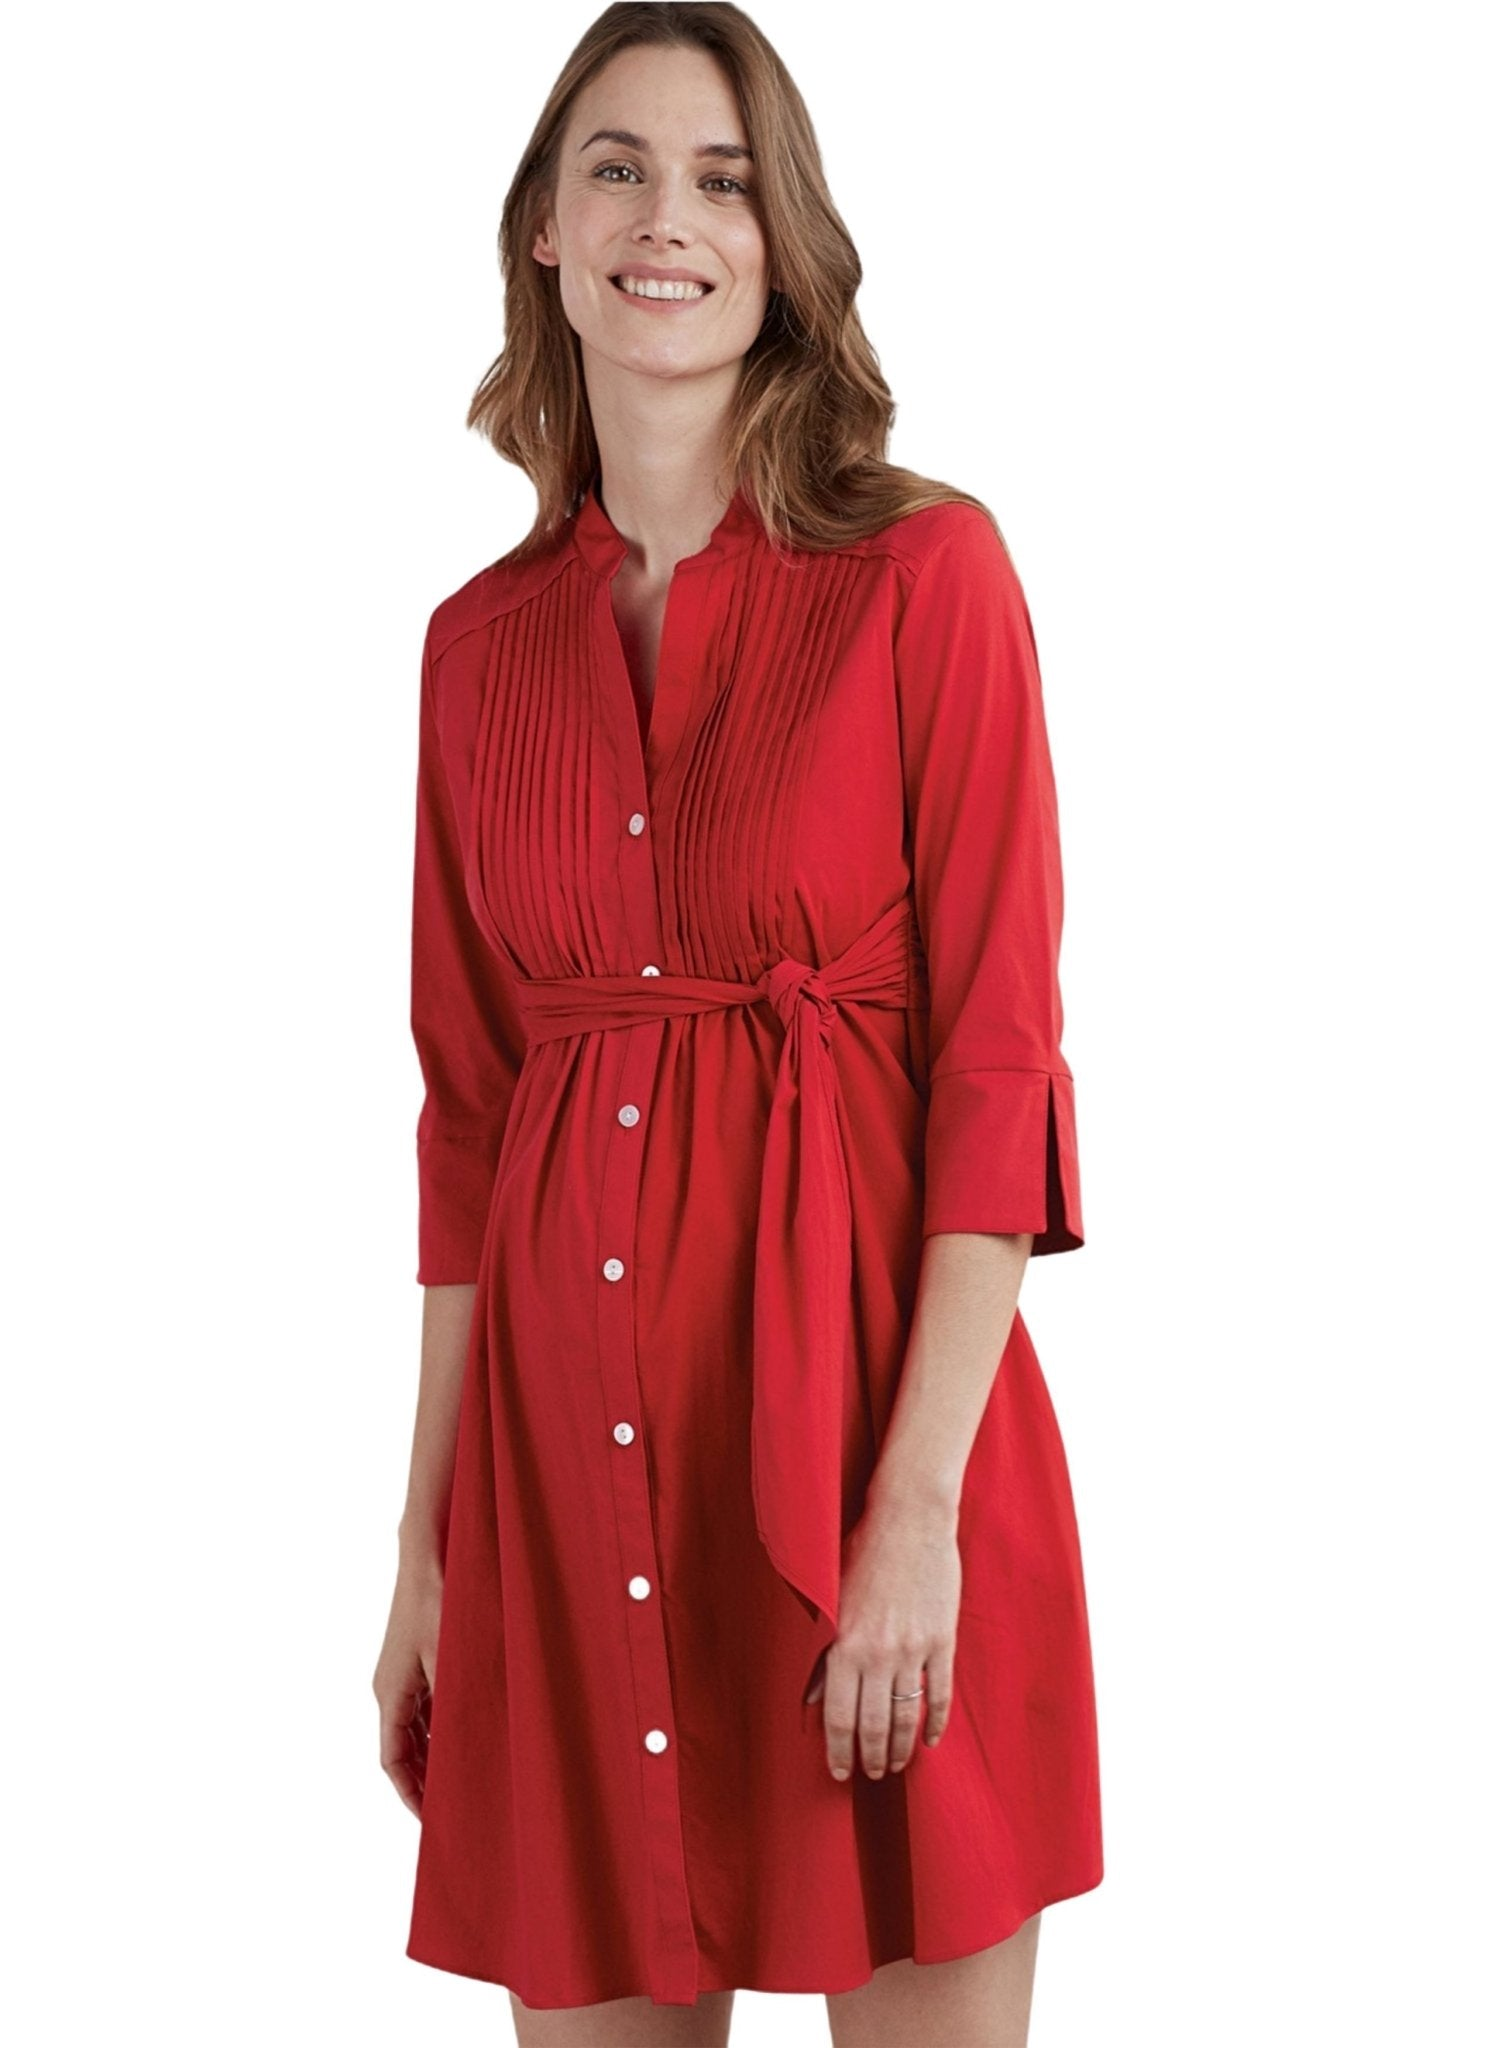 Libby Tunic Maternity Shirt - Red - Mums and Bumps